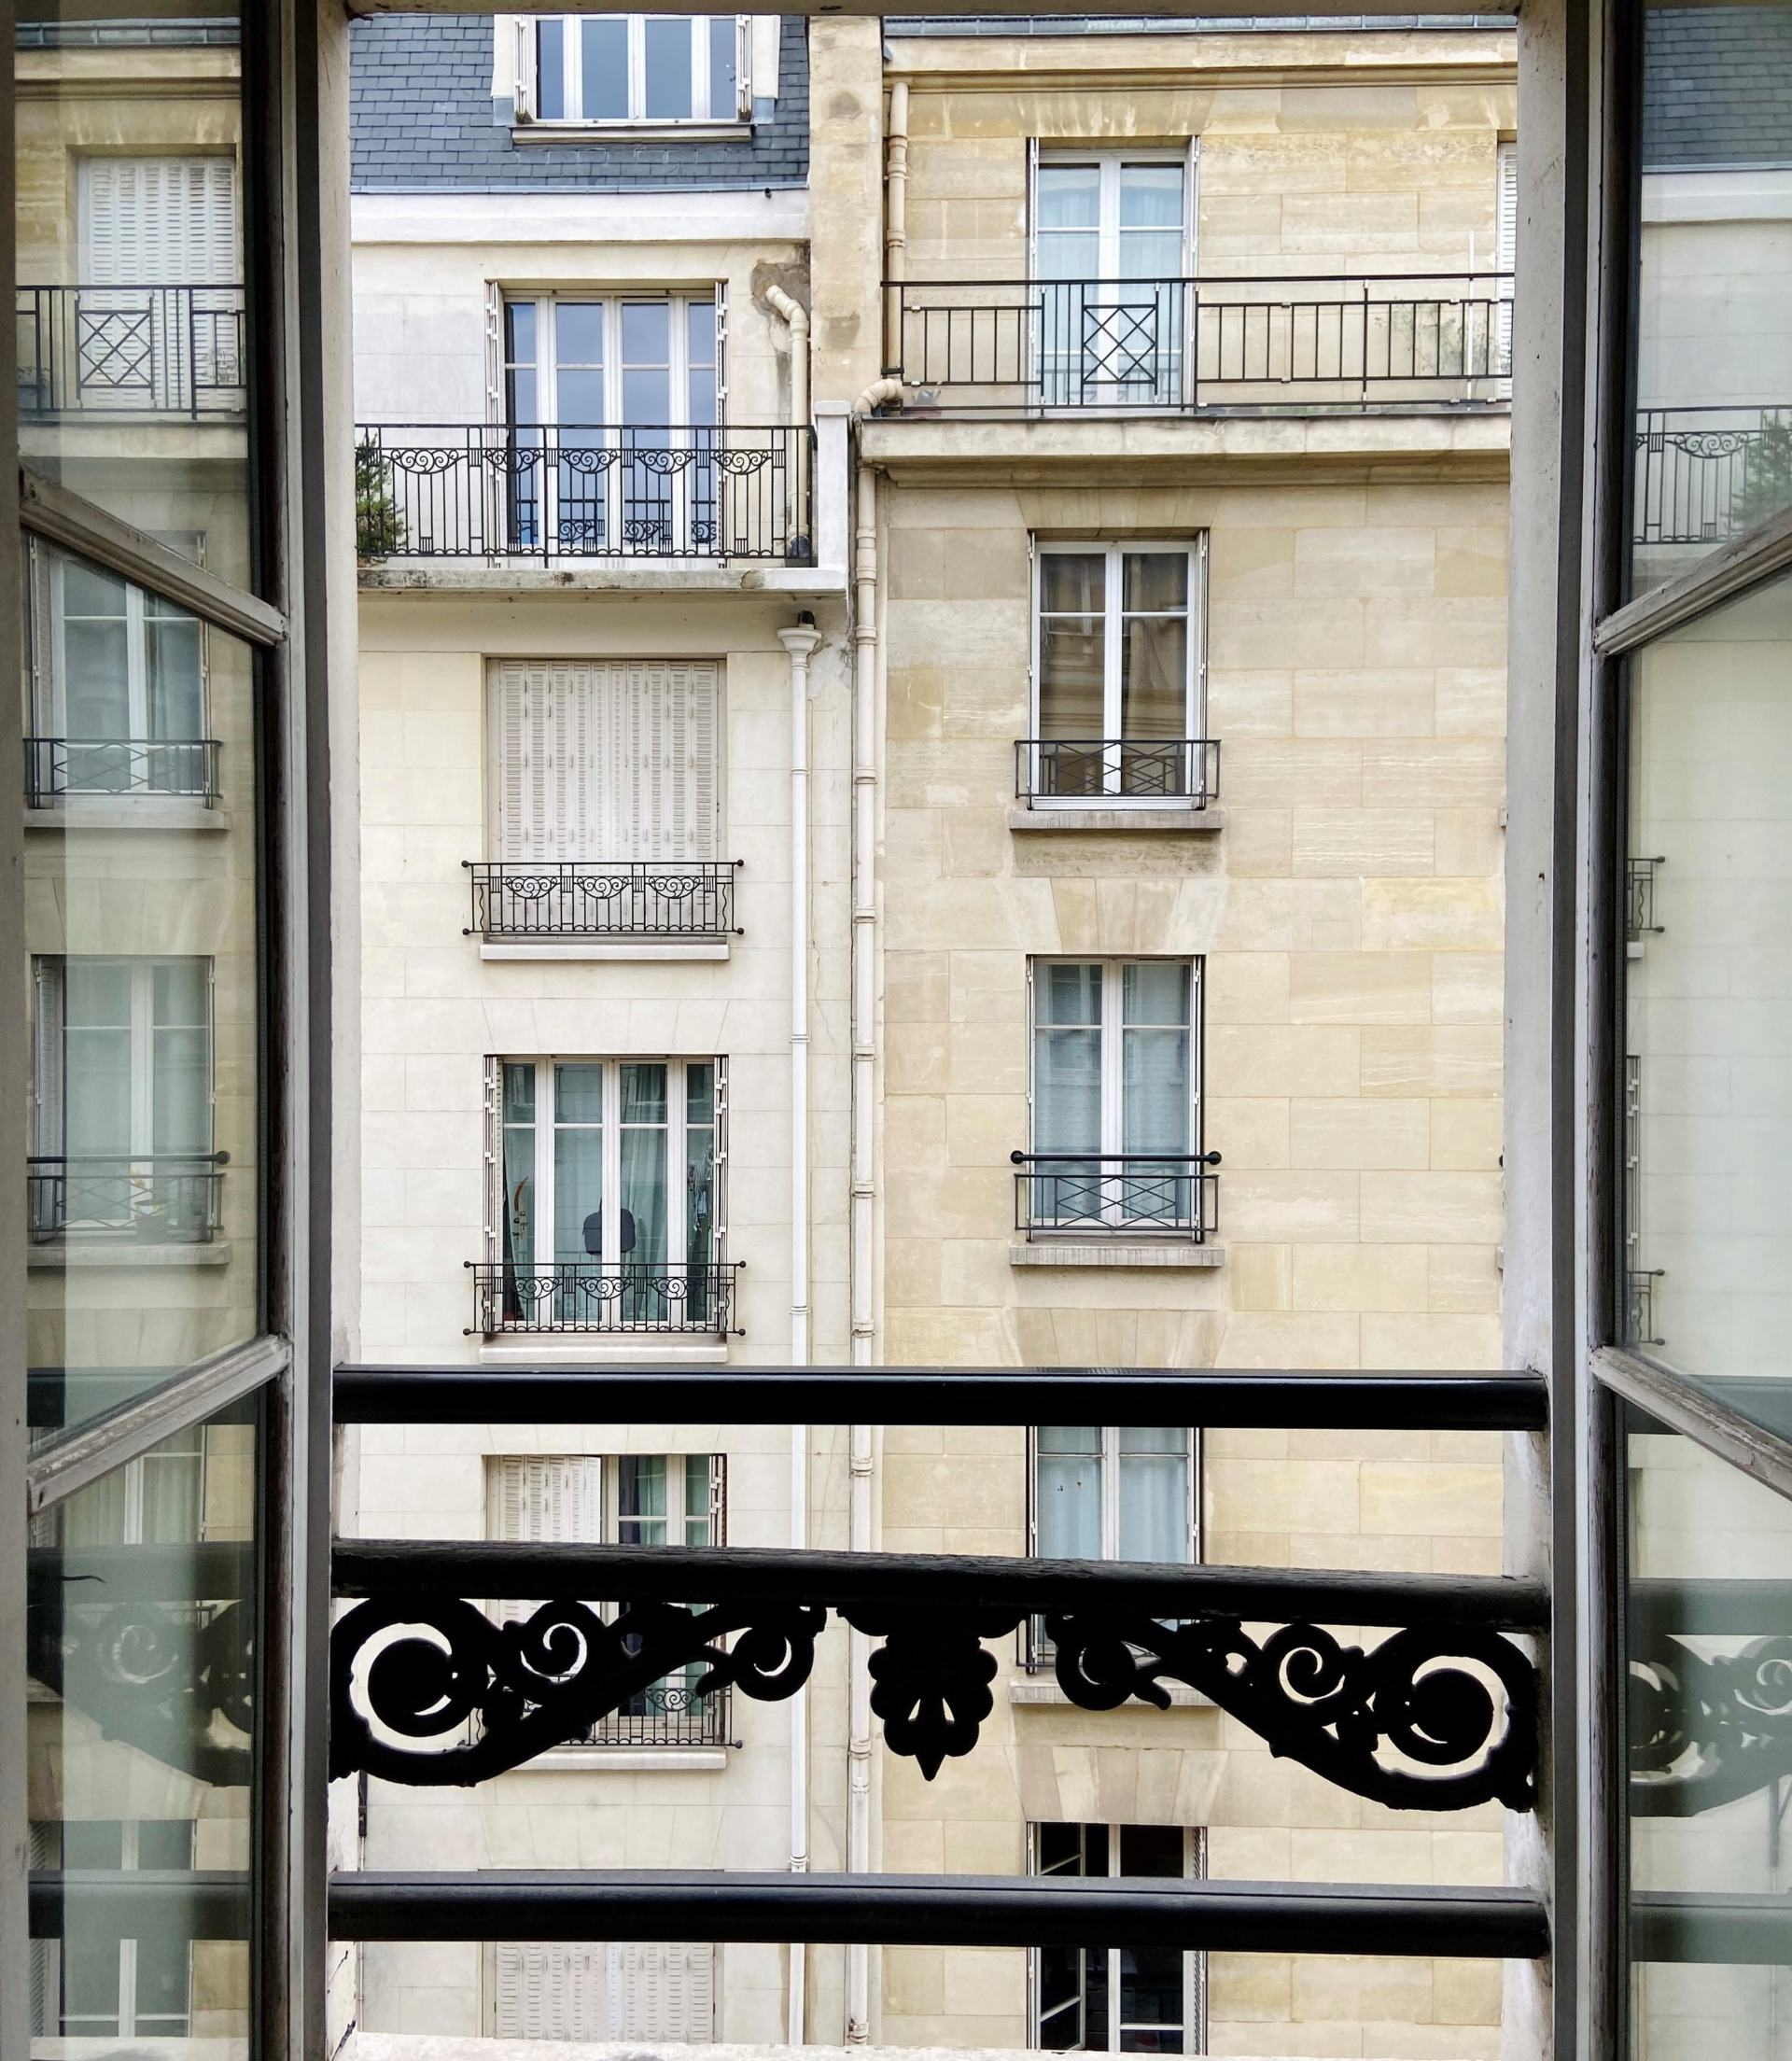 View of Paris Haussman building from window